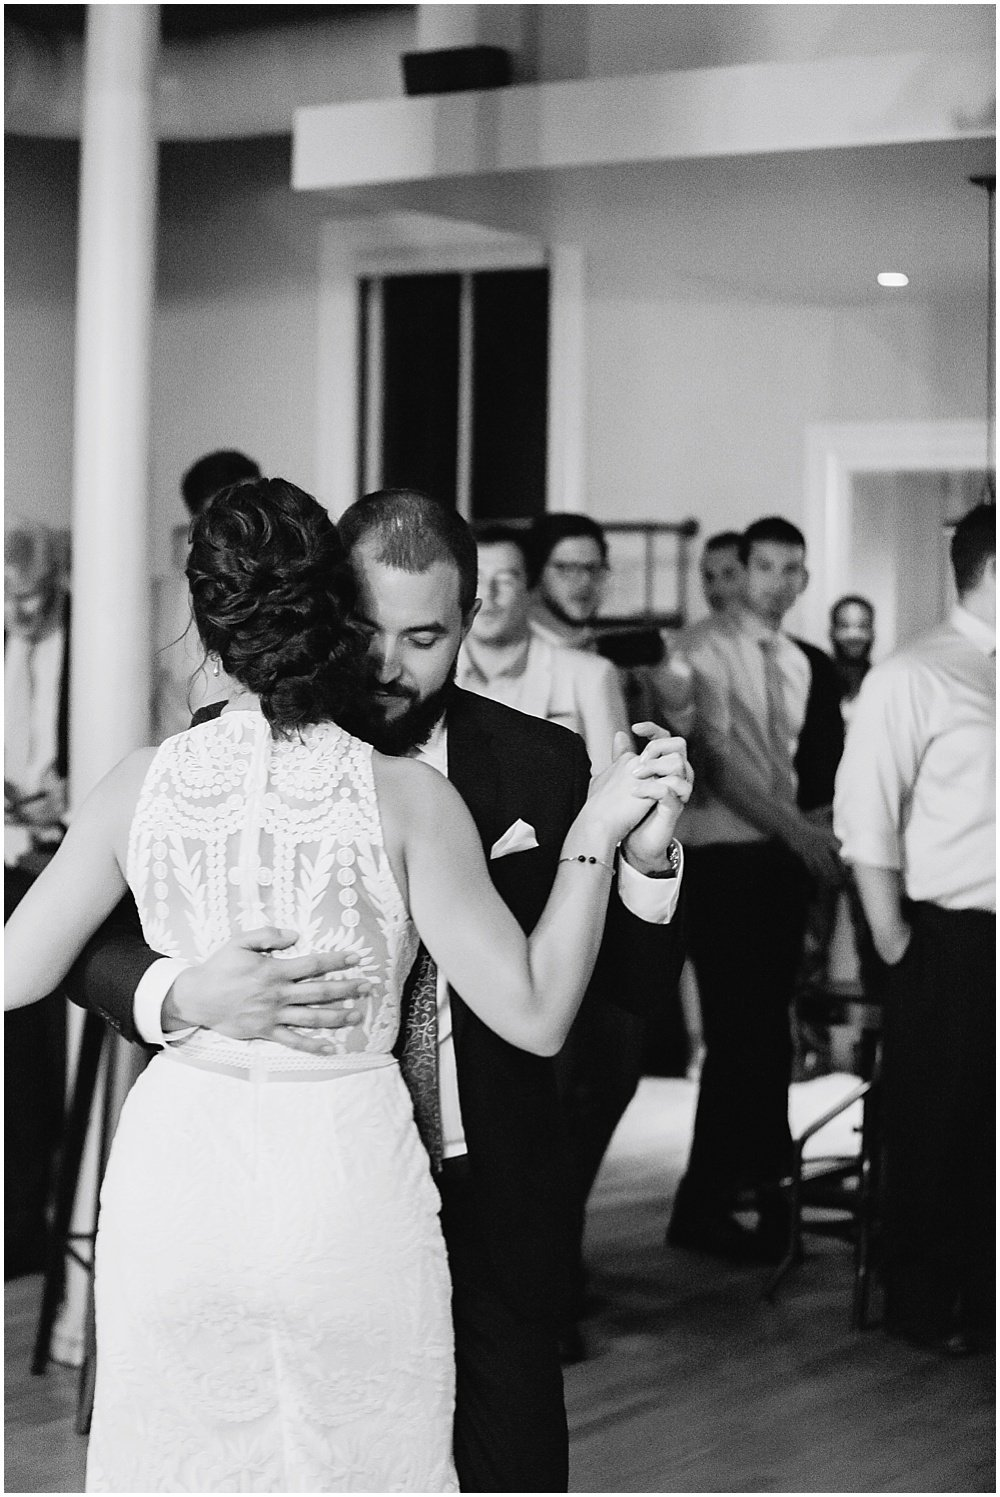 Bride and groom first dance at the commissary wedding in san francisco by chloe jackman photography